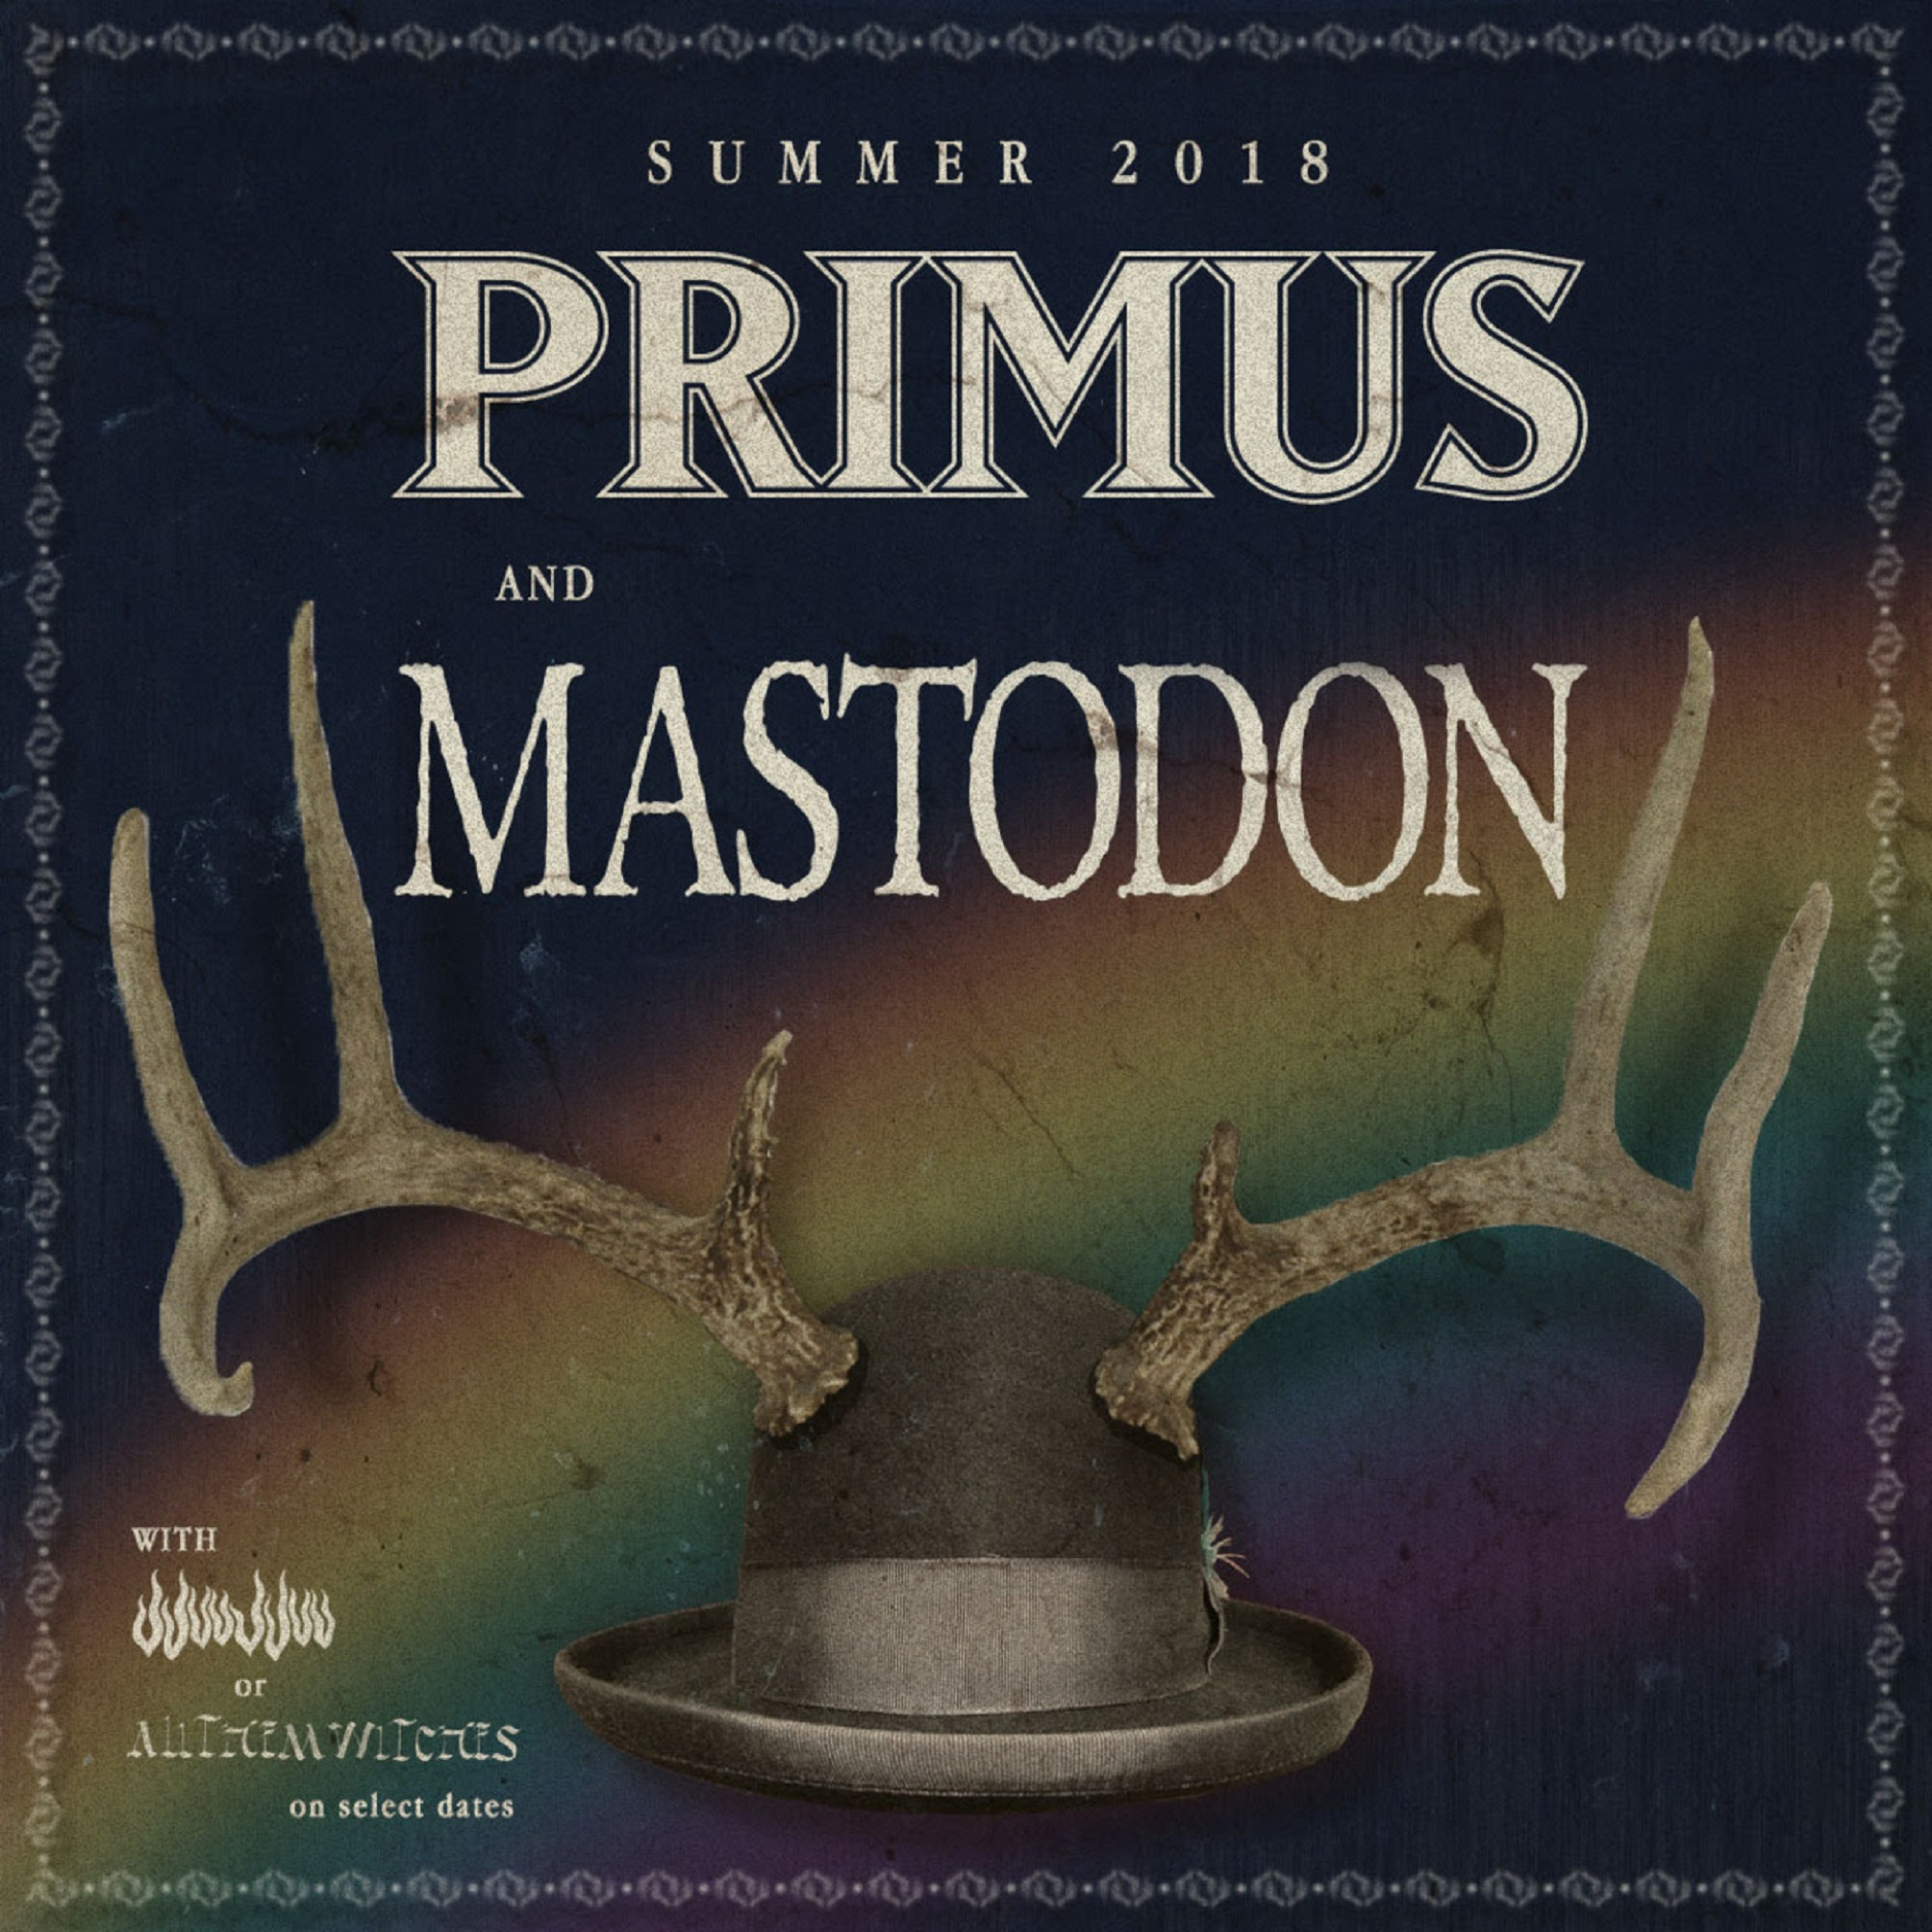 Primus Announces Summer Tour with Mastodon